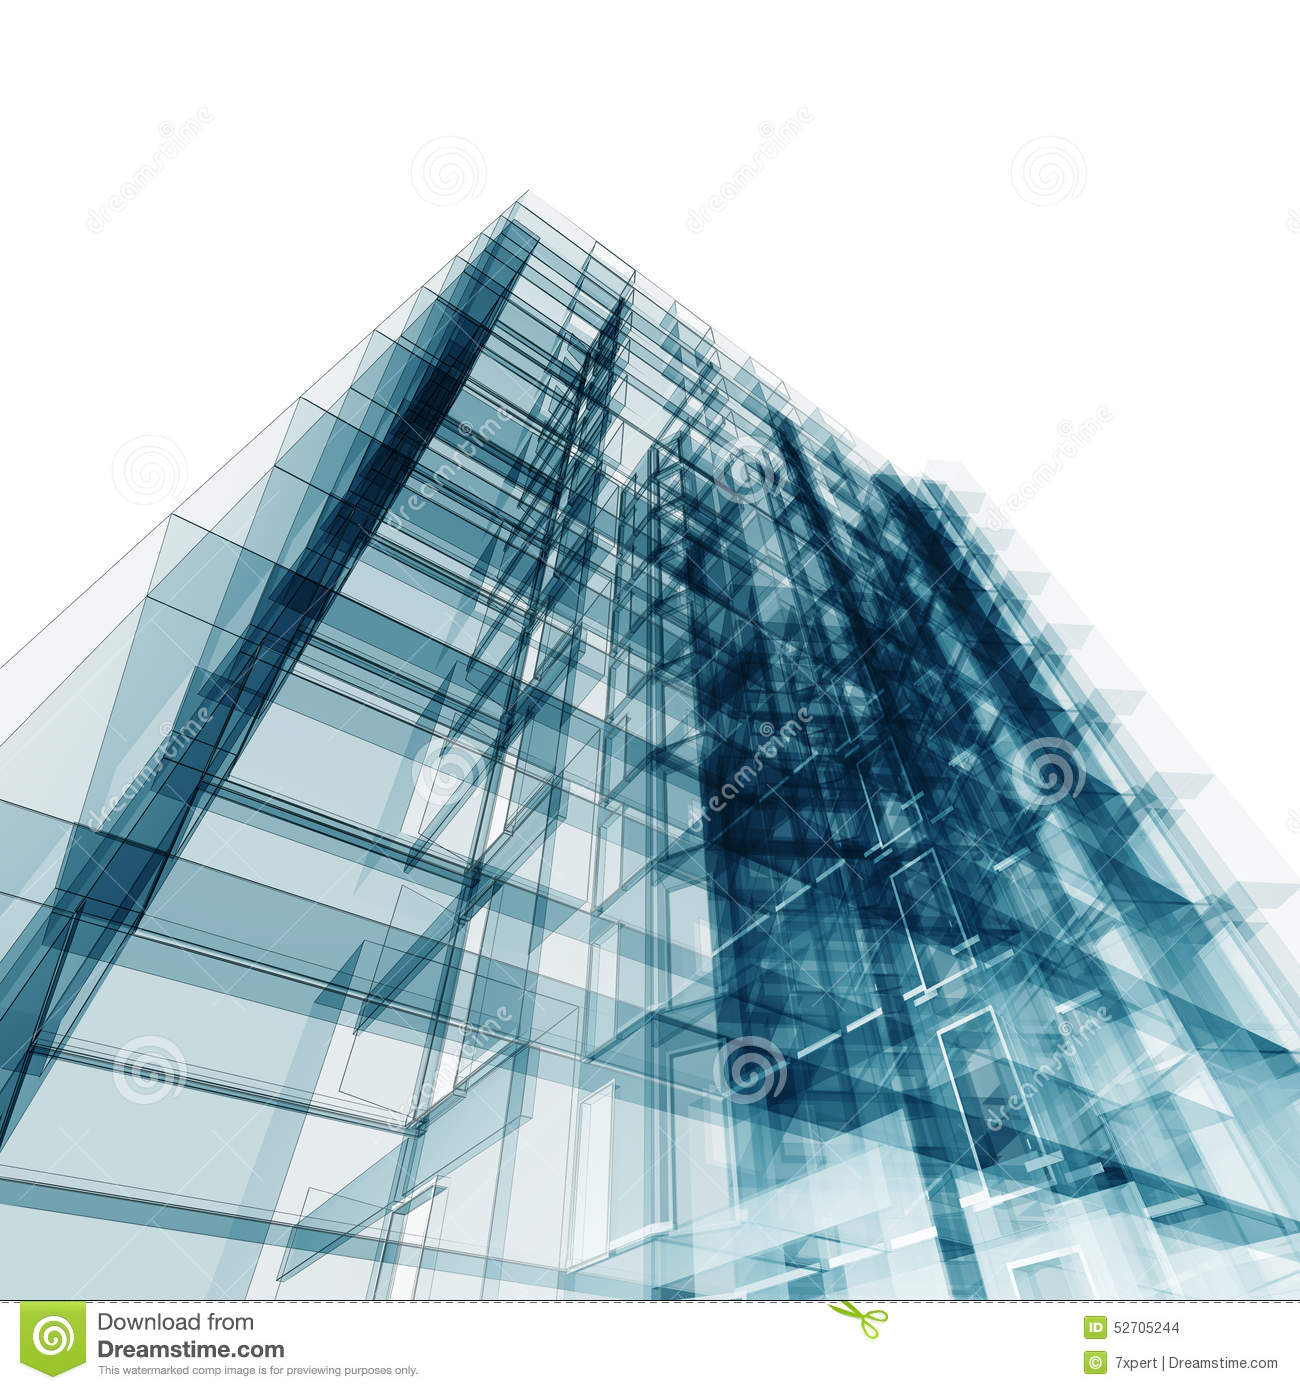 Picture Book Illustration Making An Architectural Model: Abstract Building Stock Illustration. Illustration Of